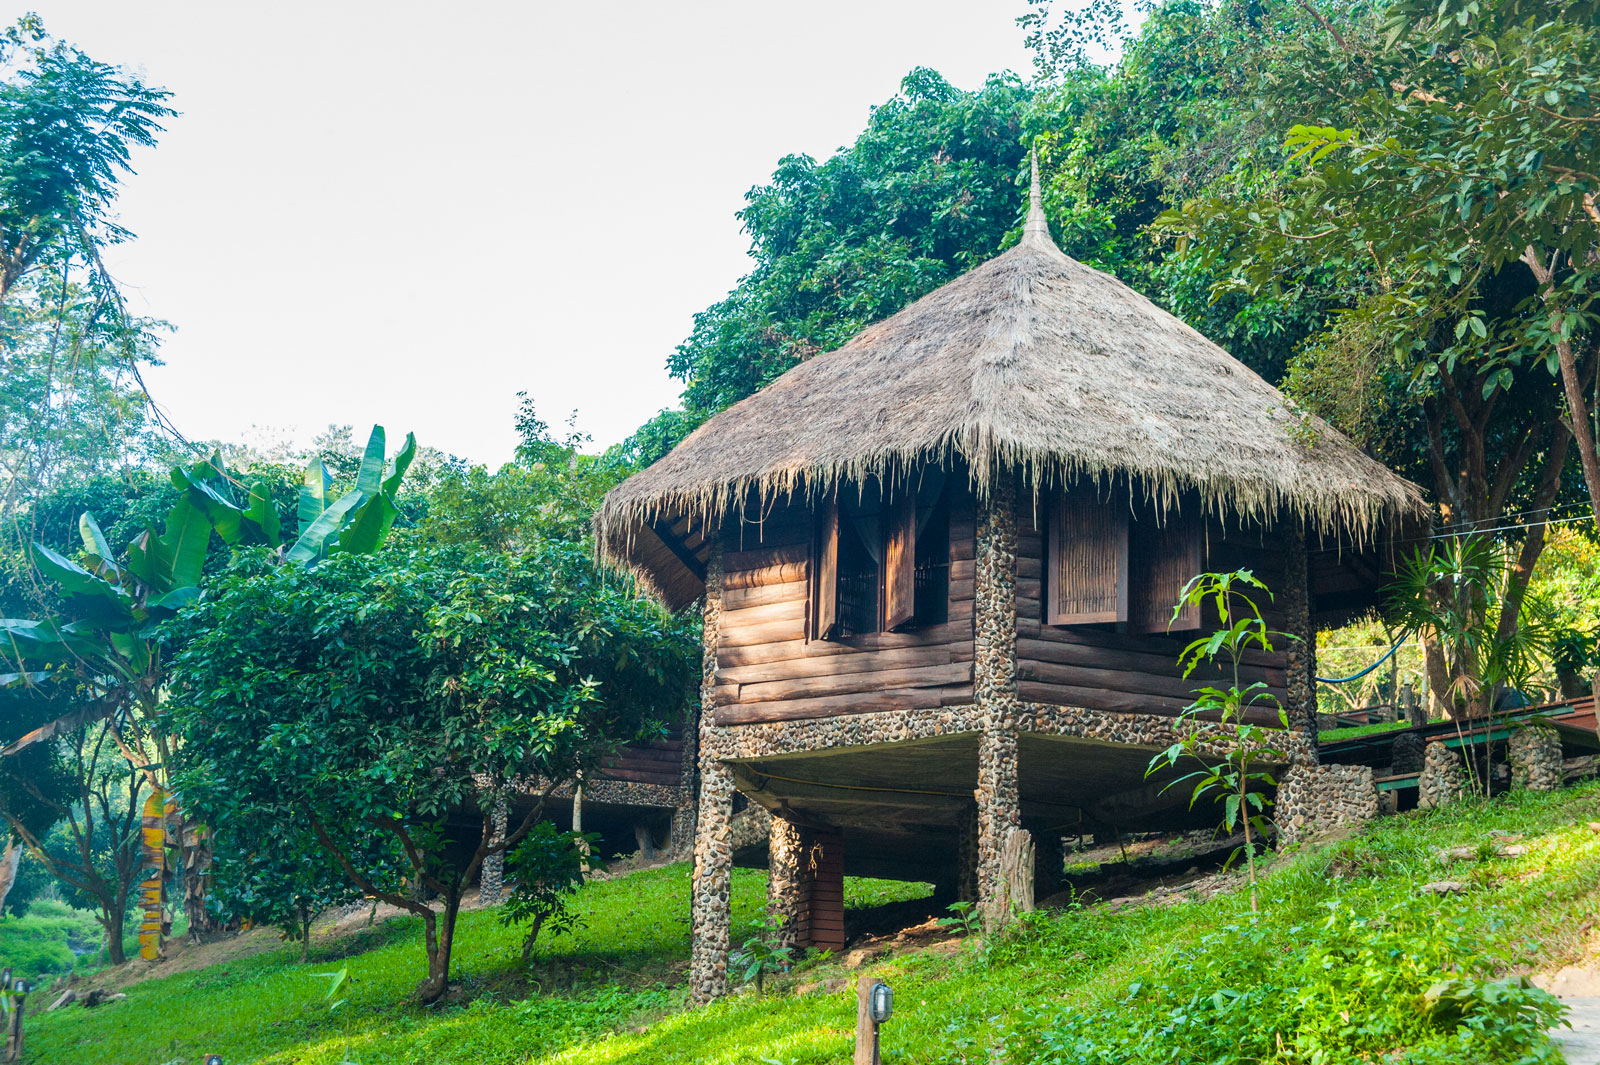 BAMBOO HUT 3   1-2 Guests   • Queen Bed • Mosquito net canopy • Ensuite bathroom • Outdoor seating area • Breakfast included • Fan